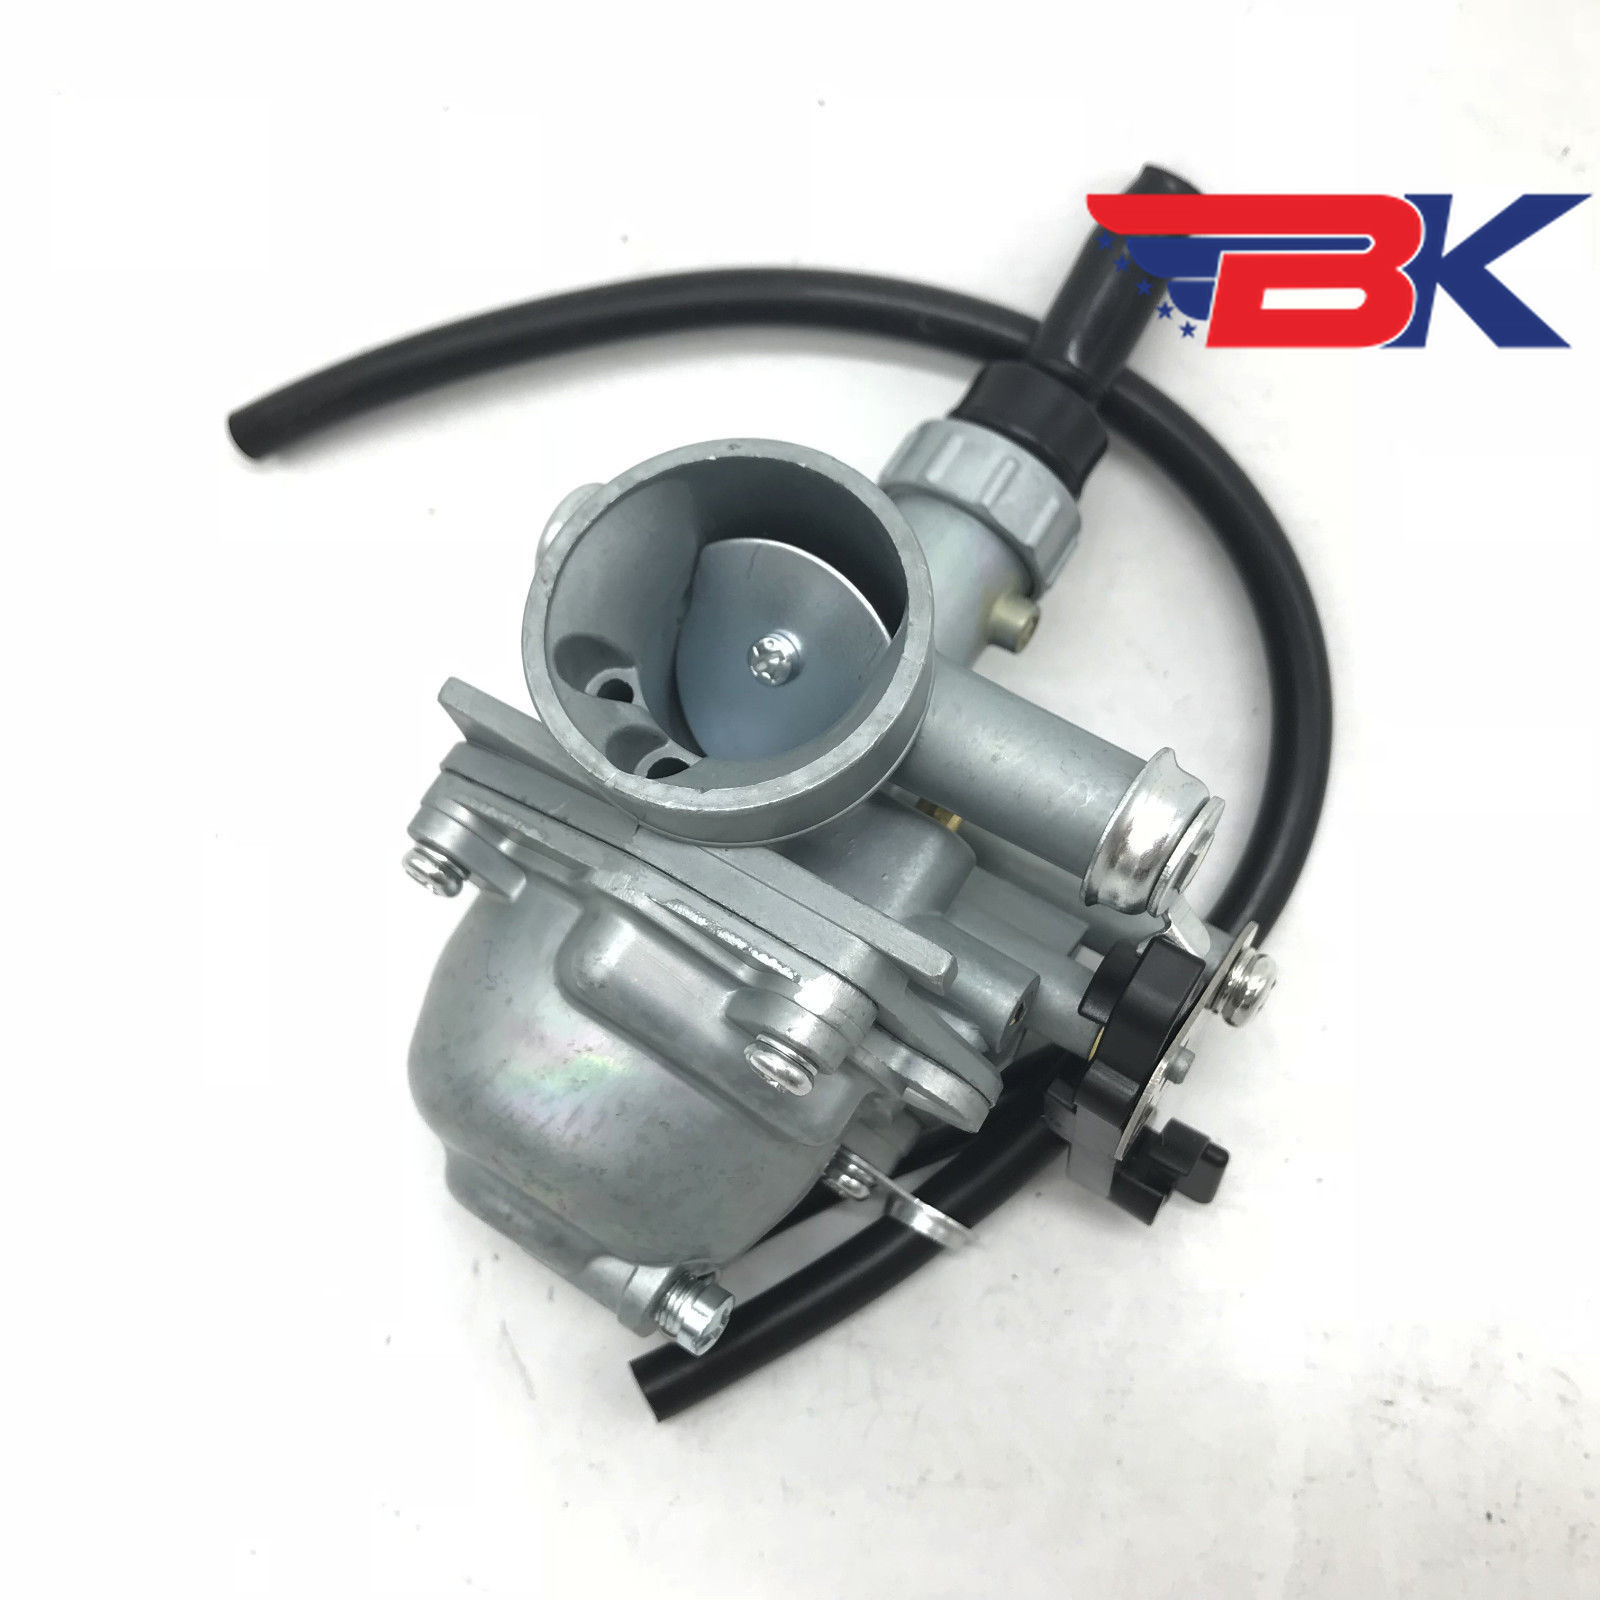 Atv Parts & Accessories Reliable Vm16 Mikuni Carby 50cc 70cc 110 125cc Pit Dirt Bike Atv Scooter 19mm Z50 Dax Carb Carburetor Back To Search Resultsautomobiles & Motorcycles